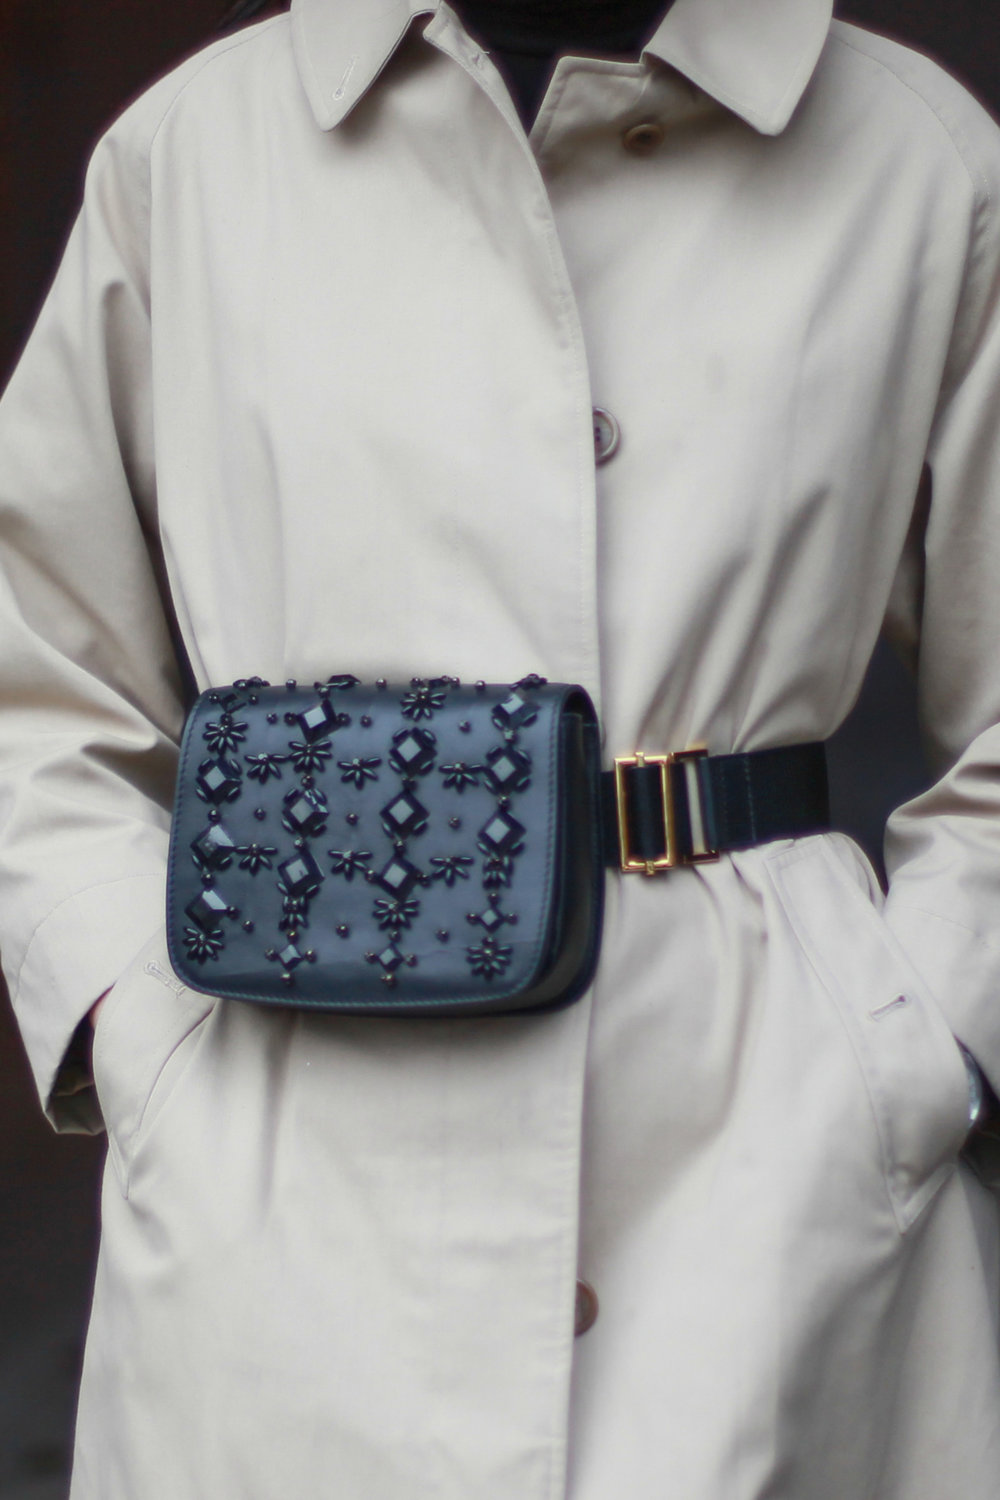 Barneys - Marni Belt Bag